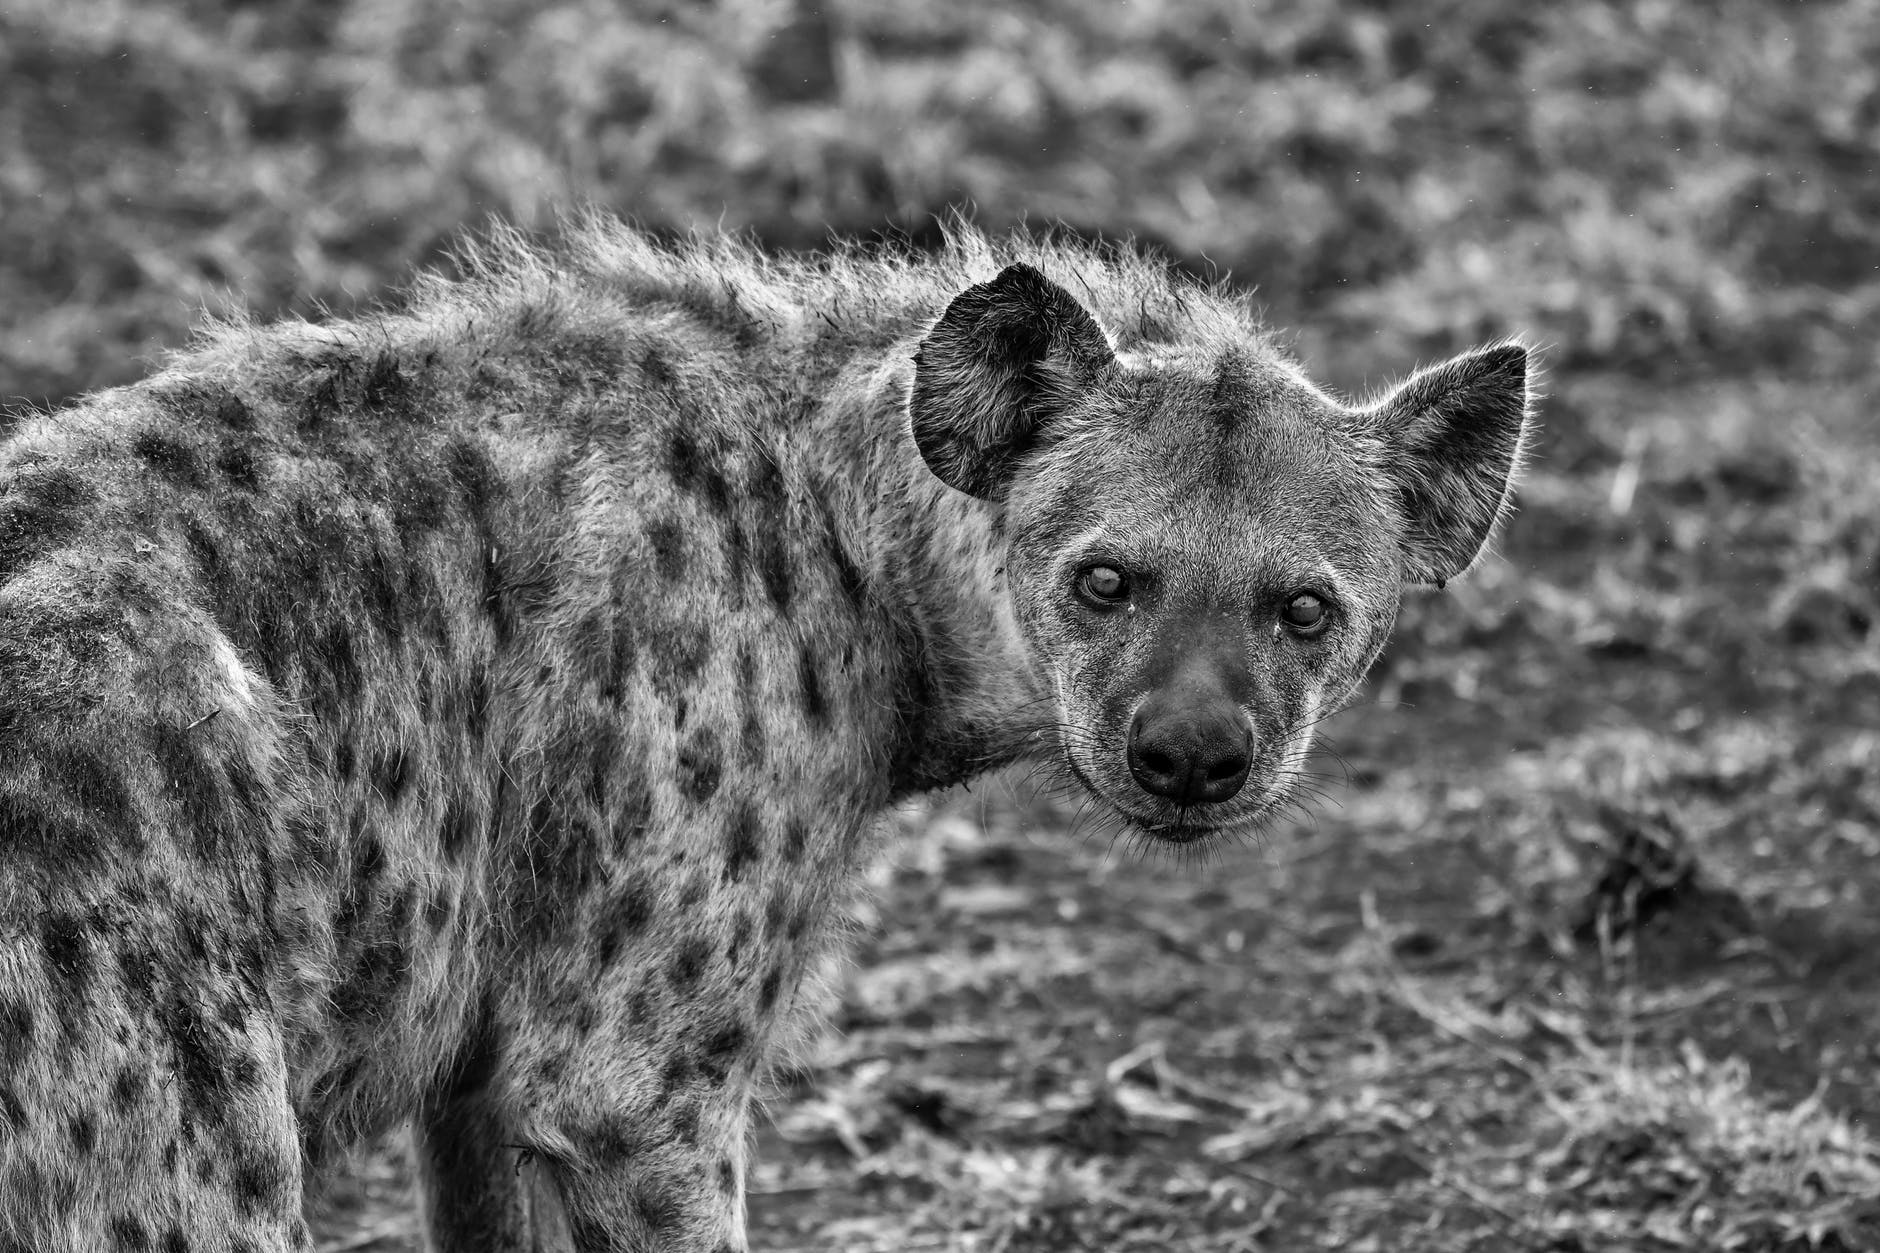 grayscale photography of hyena